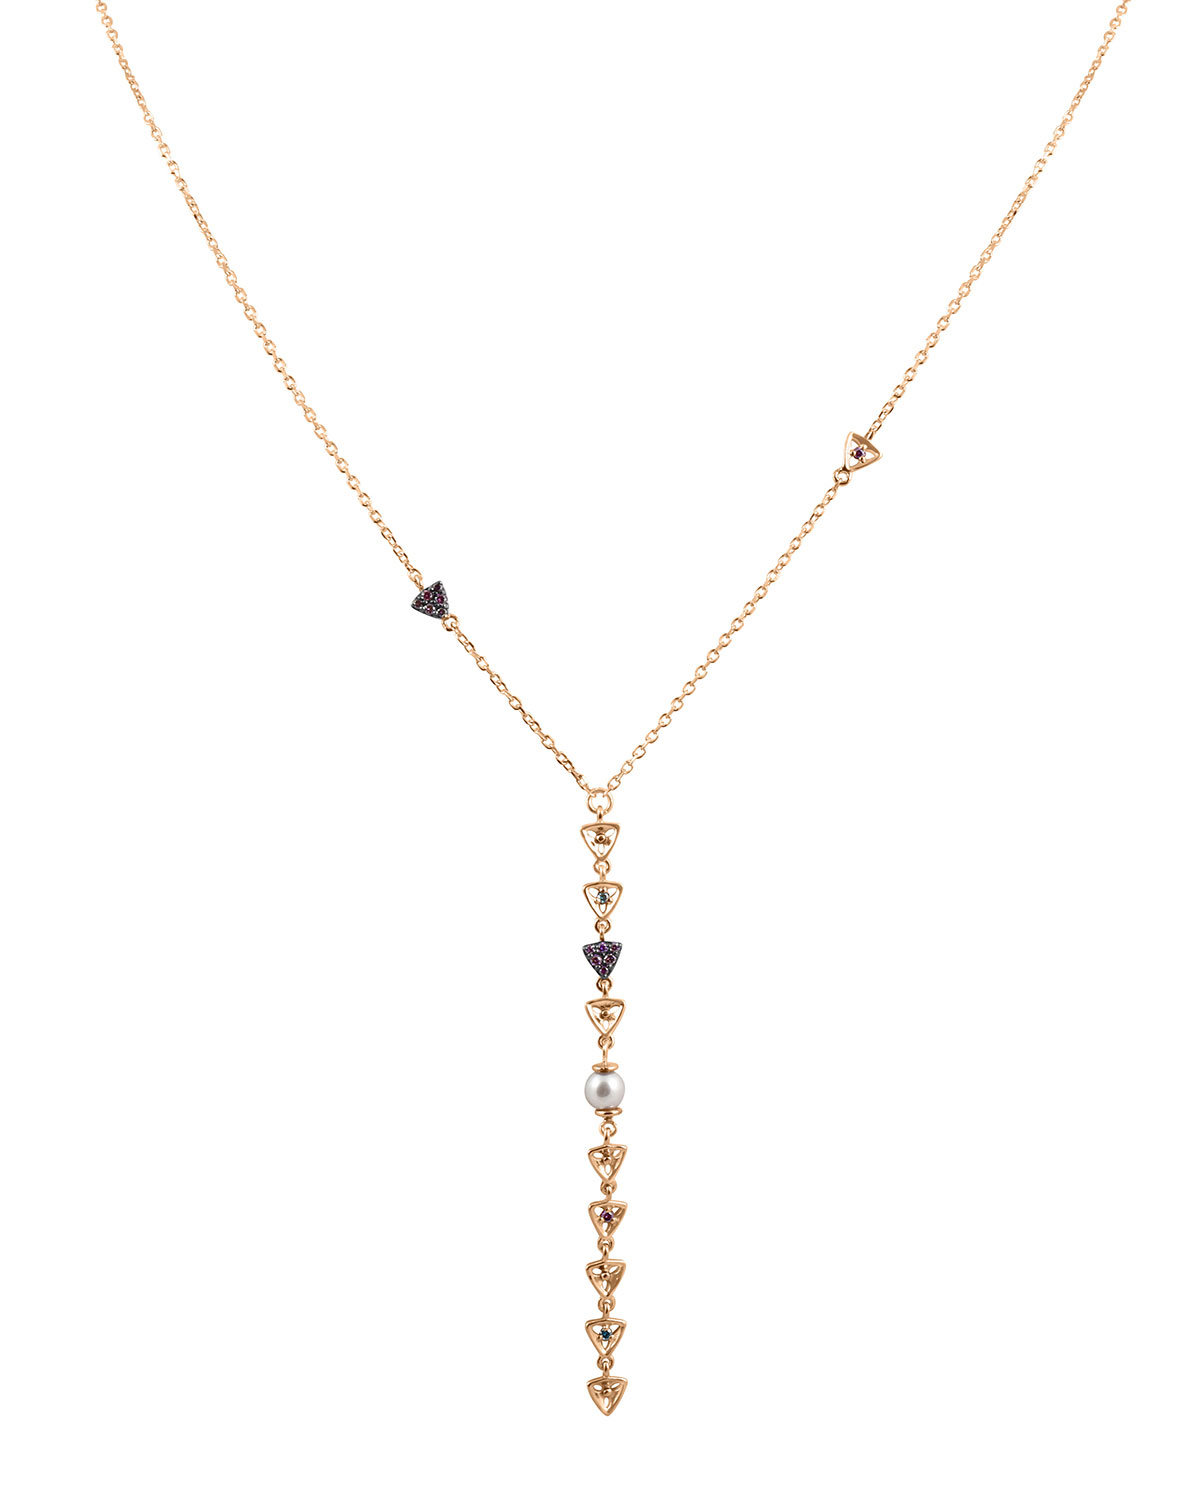 STEVIE WREN DIAMOND TRIANGLE & PEARL LARIAT NECKLACE IN 14K ROSE GOLD